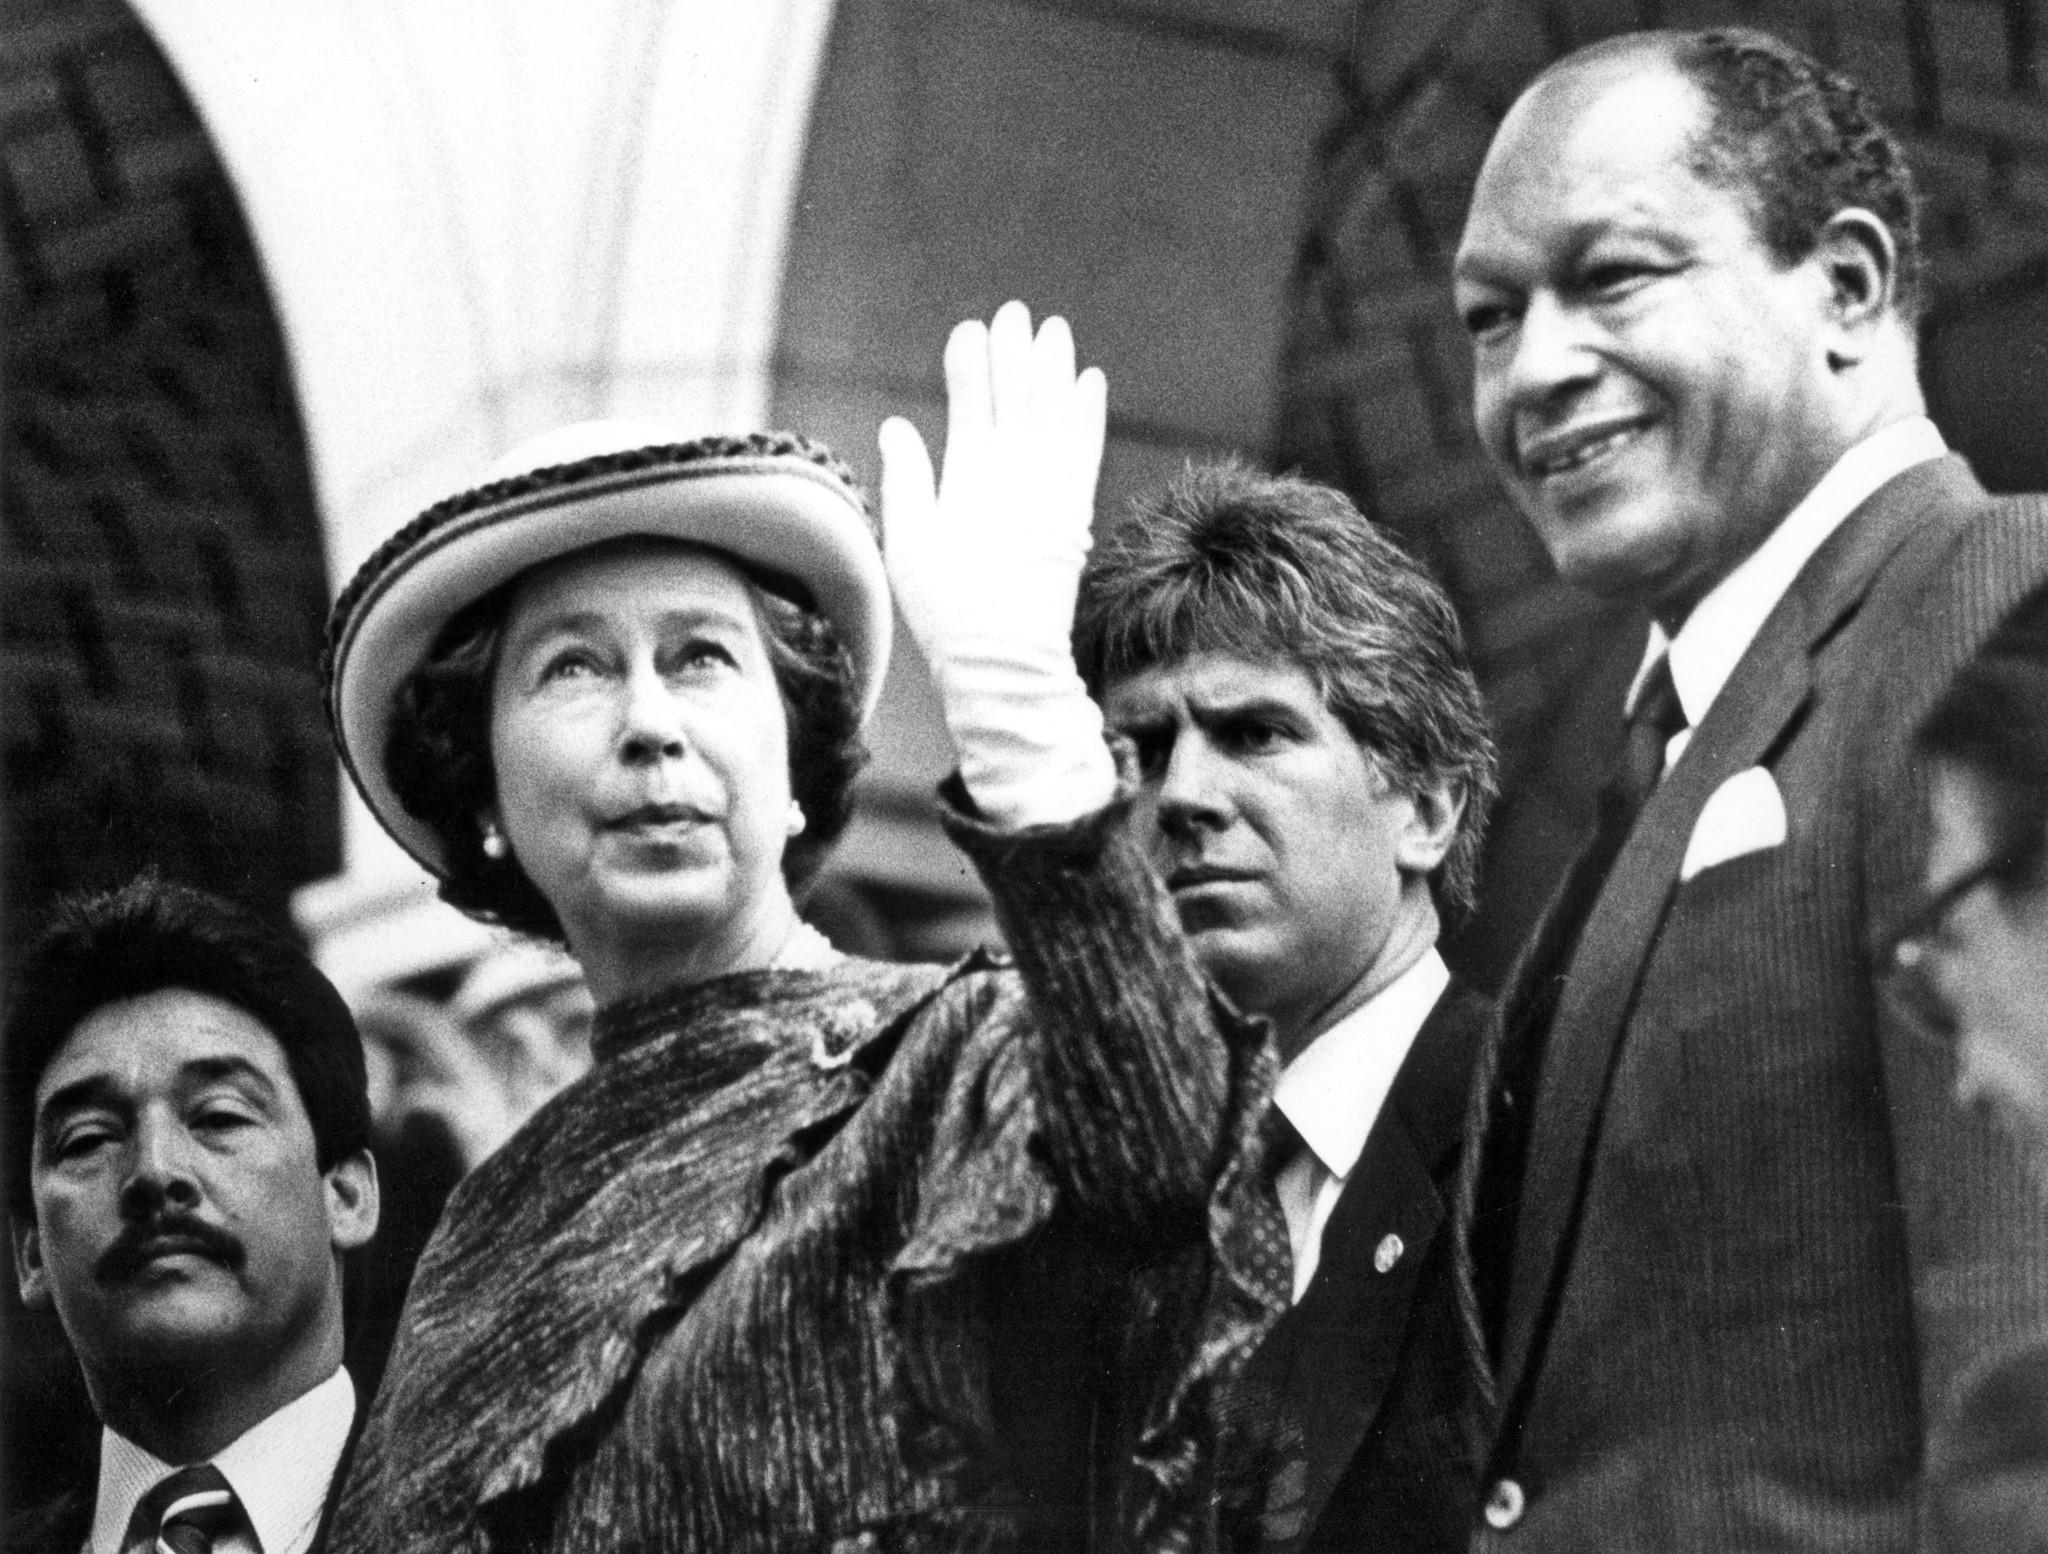 Feb. 28, 1983: Queen Elizabeth II waves to a crowd while being escorted into Los Angeles City Hall by Mayor Tom Bradley. This photo was published in the March 1, 1983, Los Angeles Times.